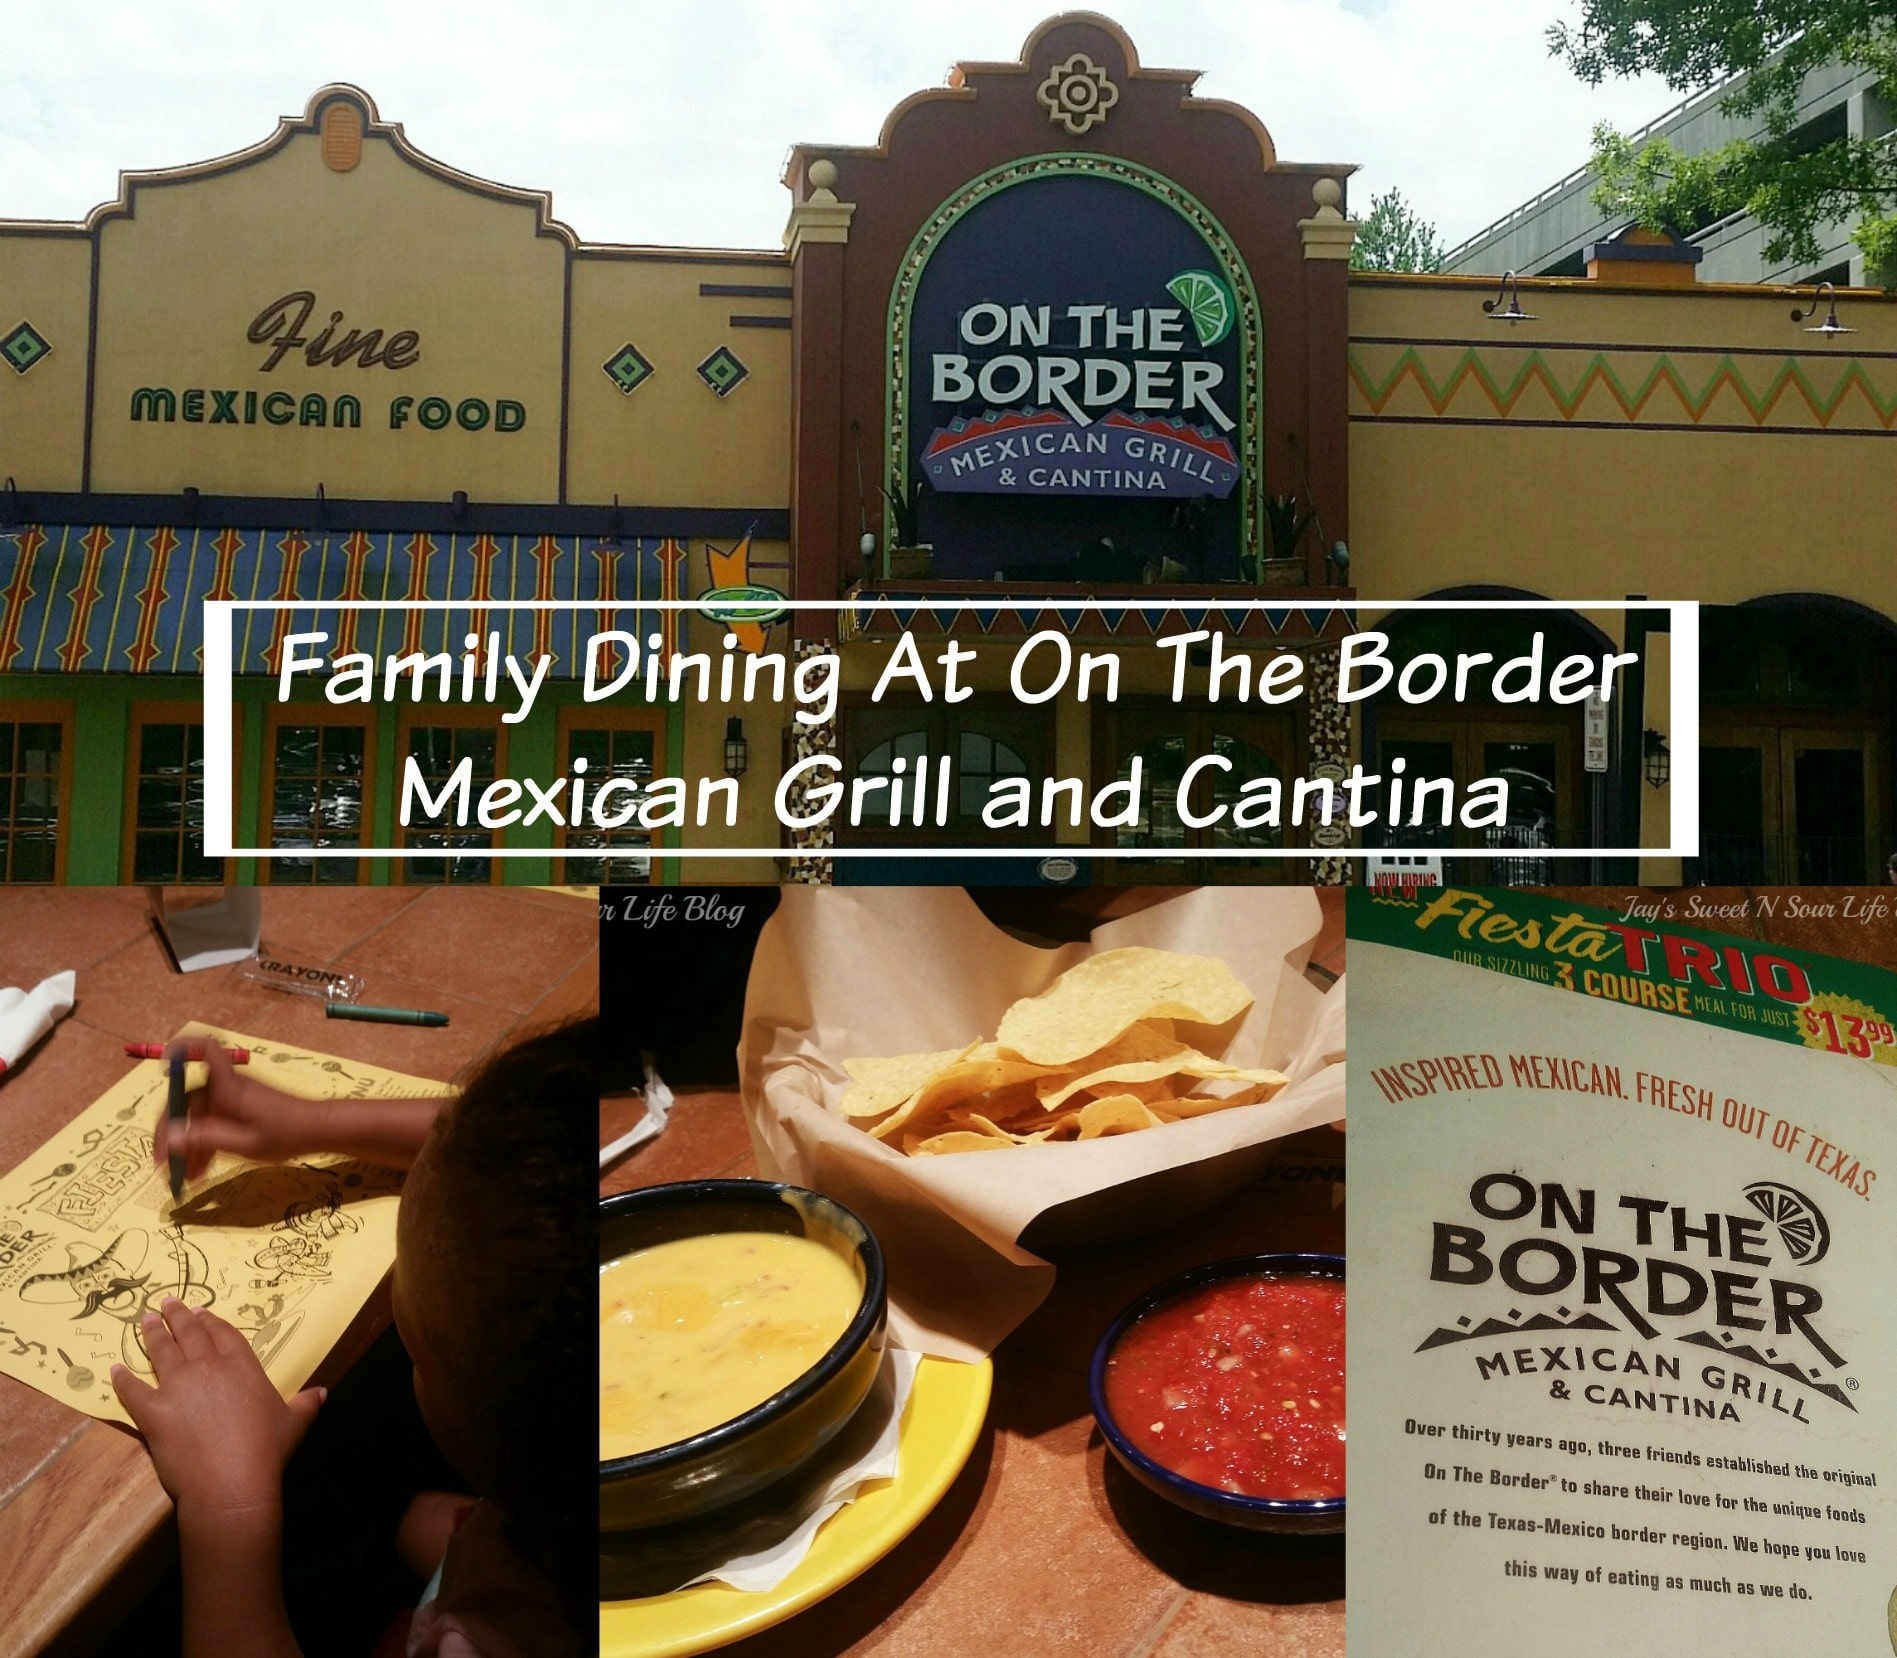 Family Dining At On The Border Mexican Grill and Cantina